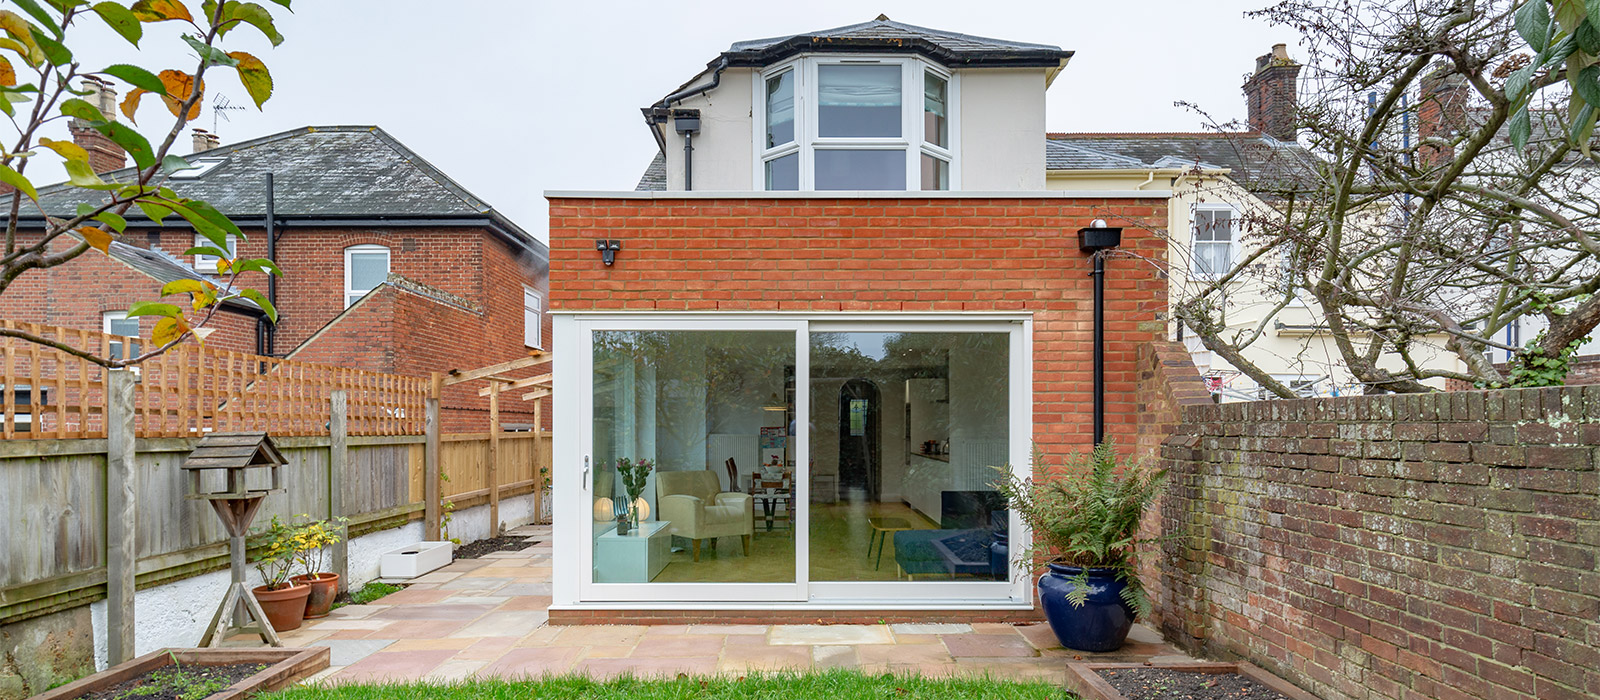 gyd-architecture | rear glazed extension